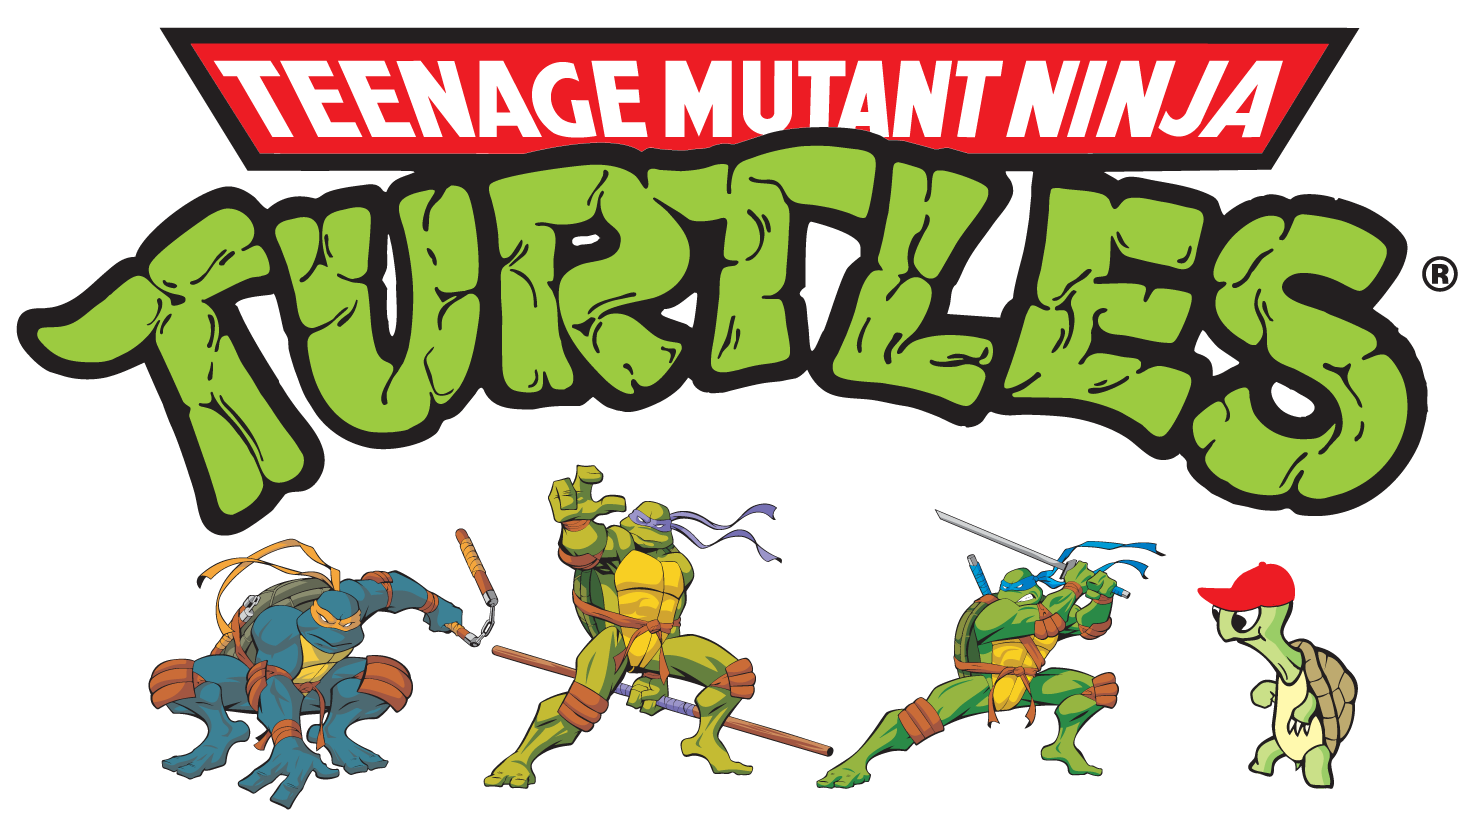 Ninja turtle shell logo - photo#28